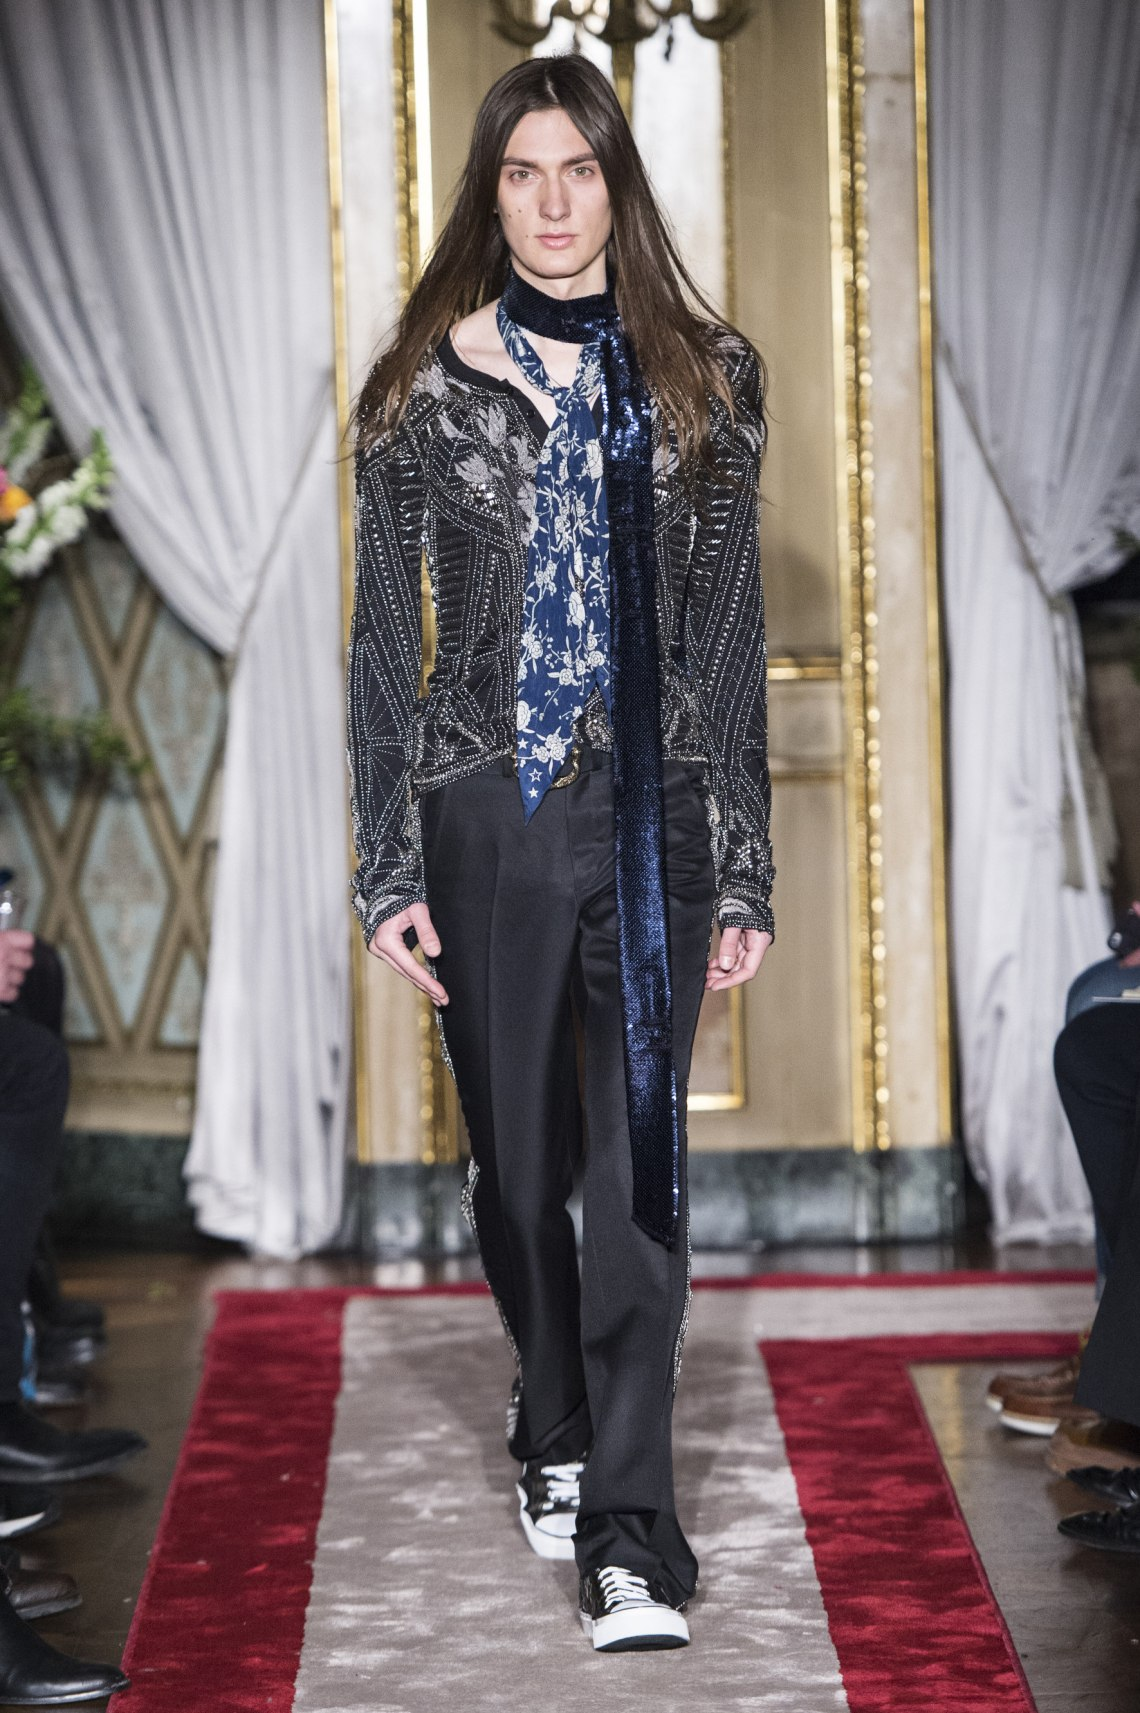 ROBERTO CAVALLI - Fall Winter 2016/17